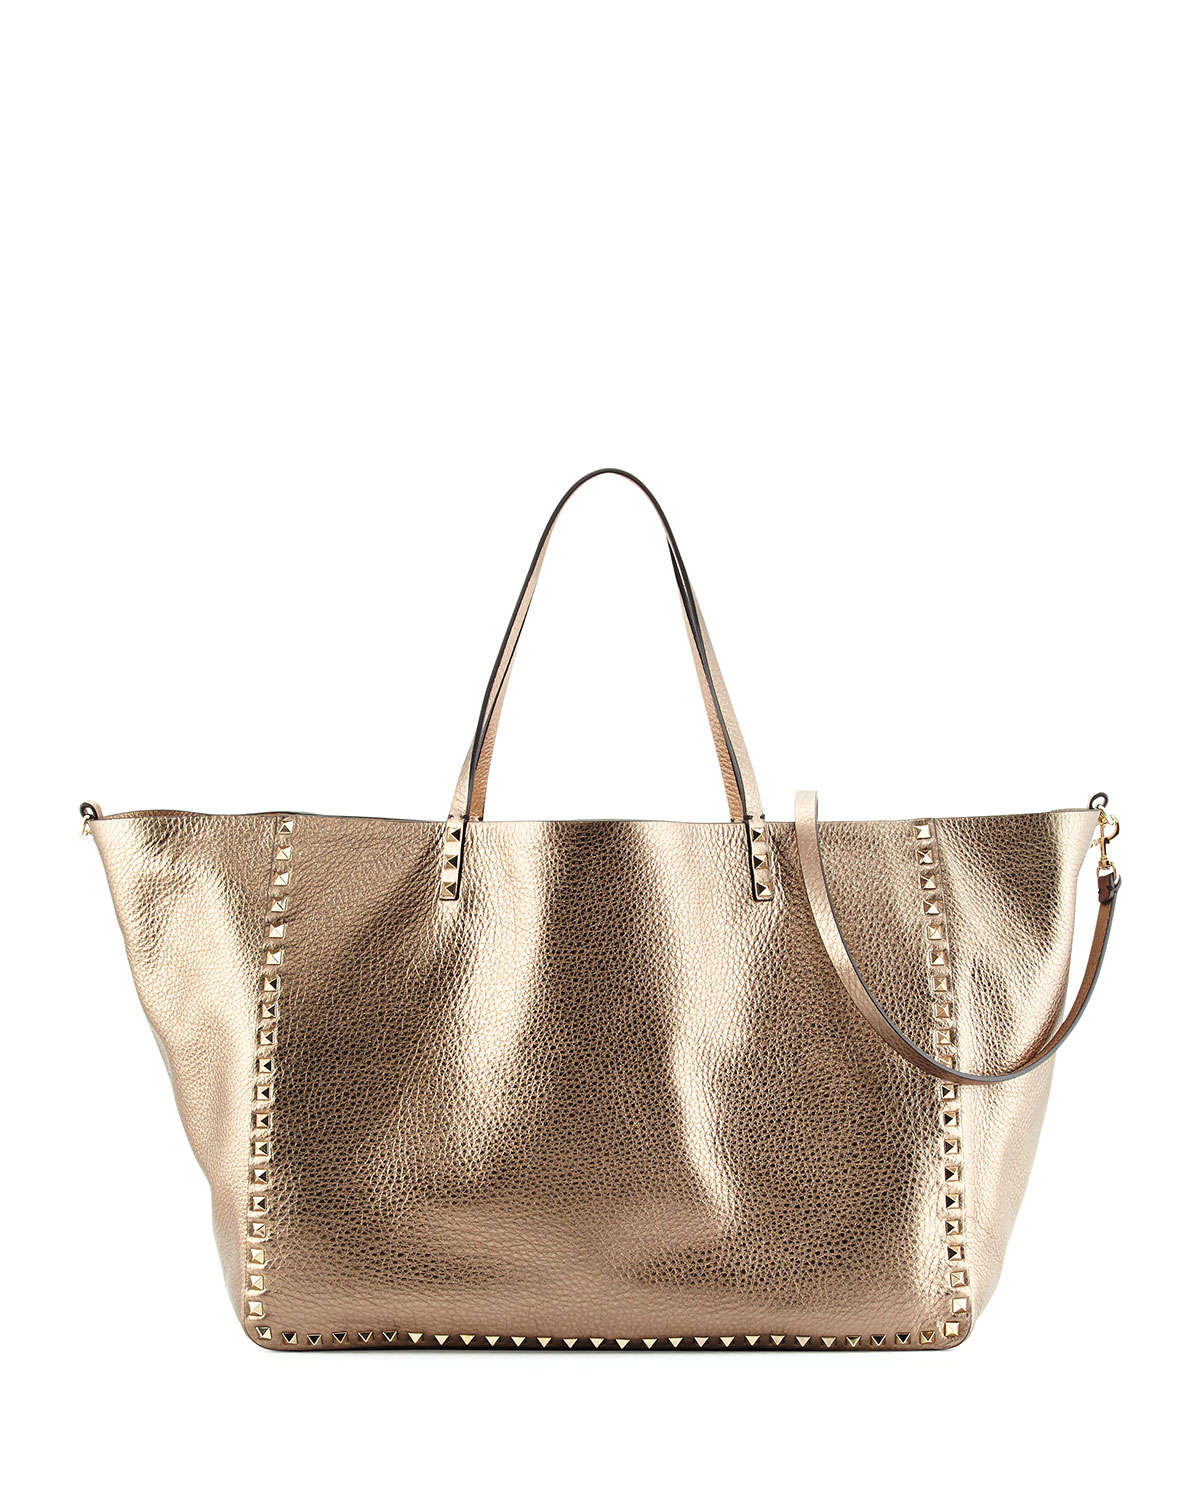 Valentino Rockstud Metallic Large Tote Bag in Metallic | Lyst